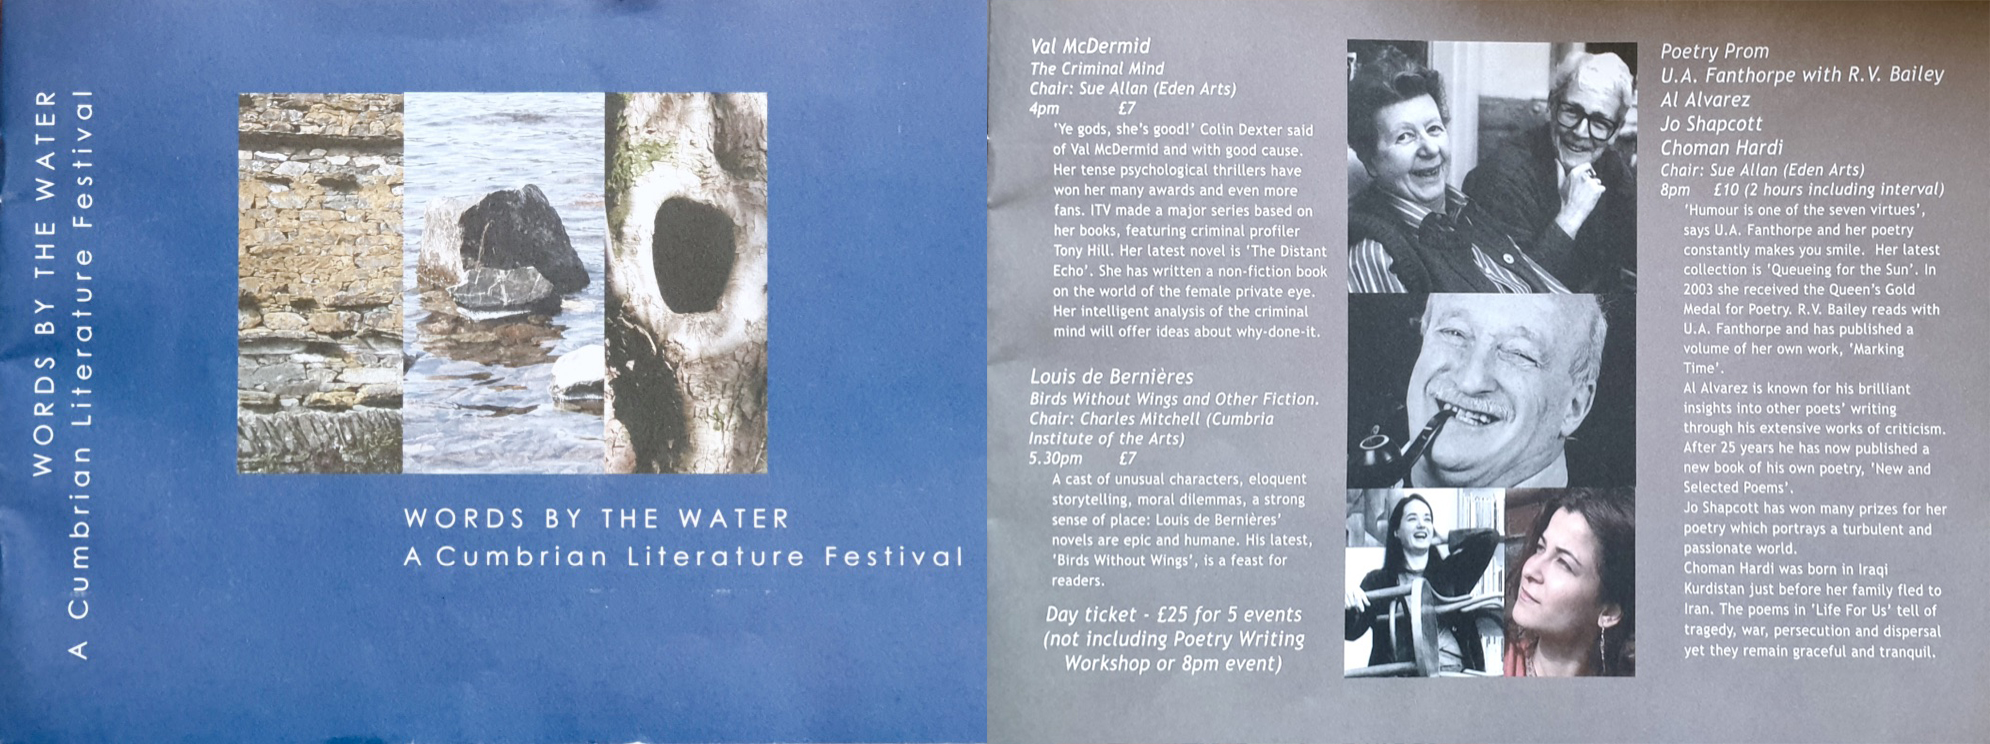 Words by The Water Festival